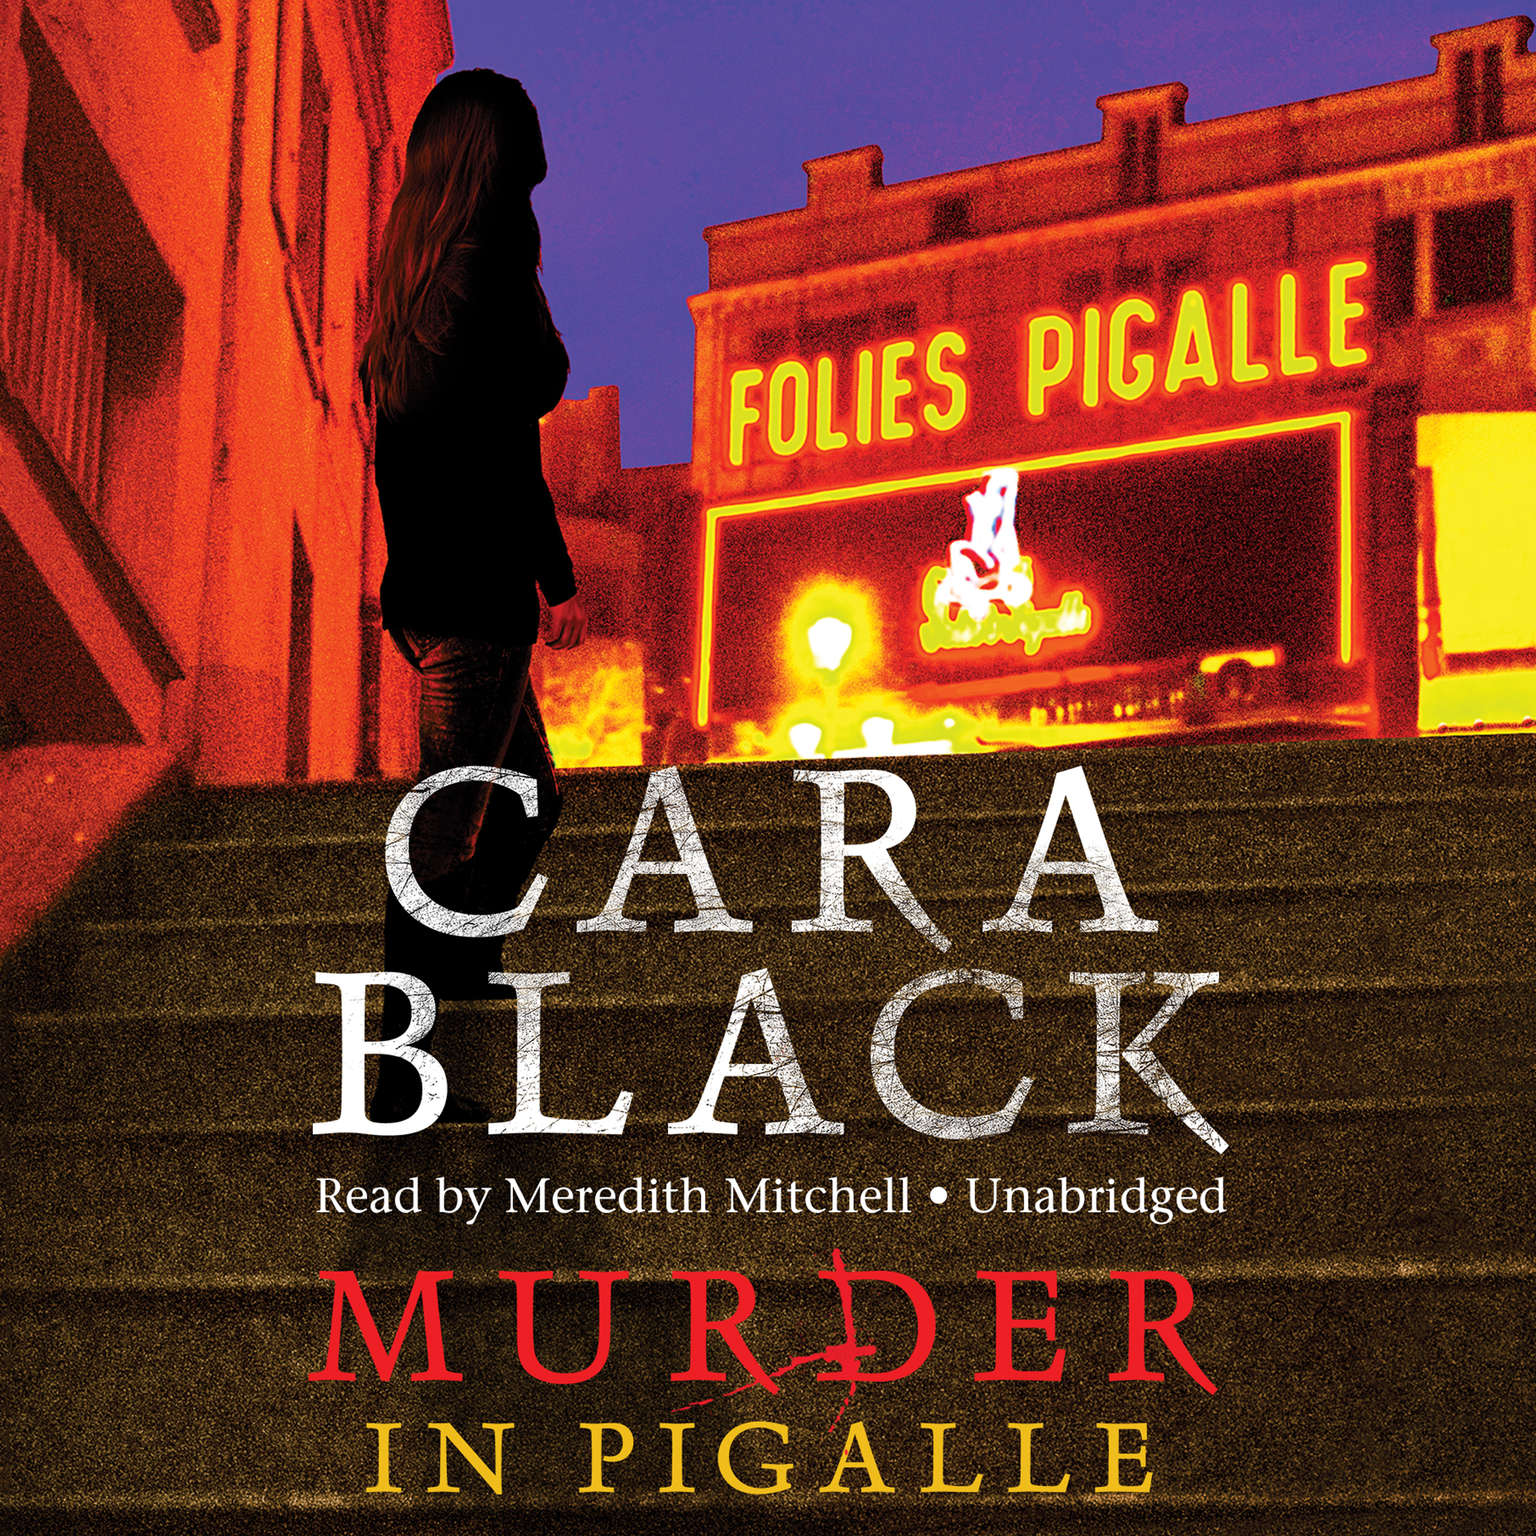 Printable Murder in Pigalle Audiobook Cover Art